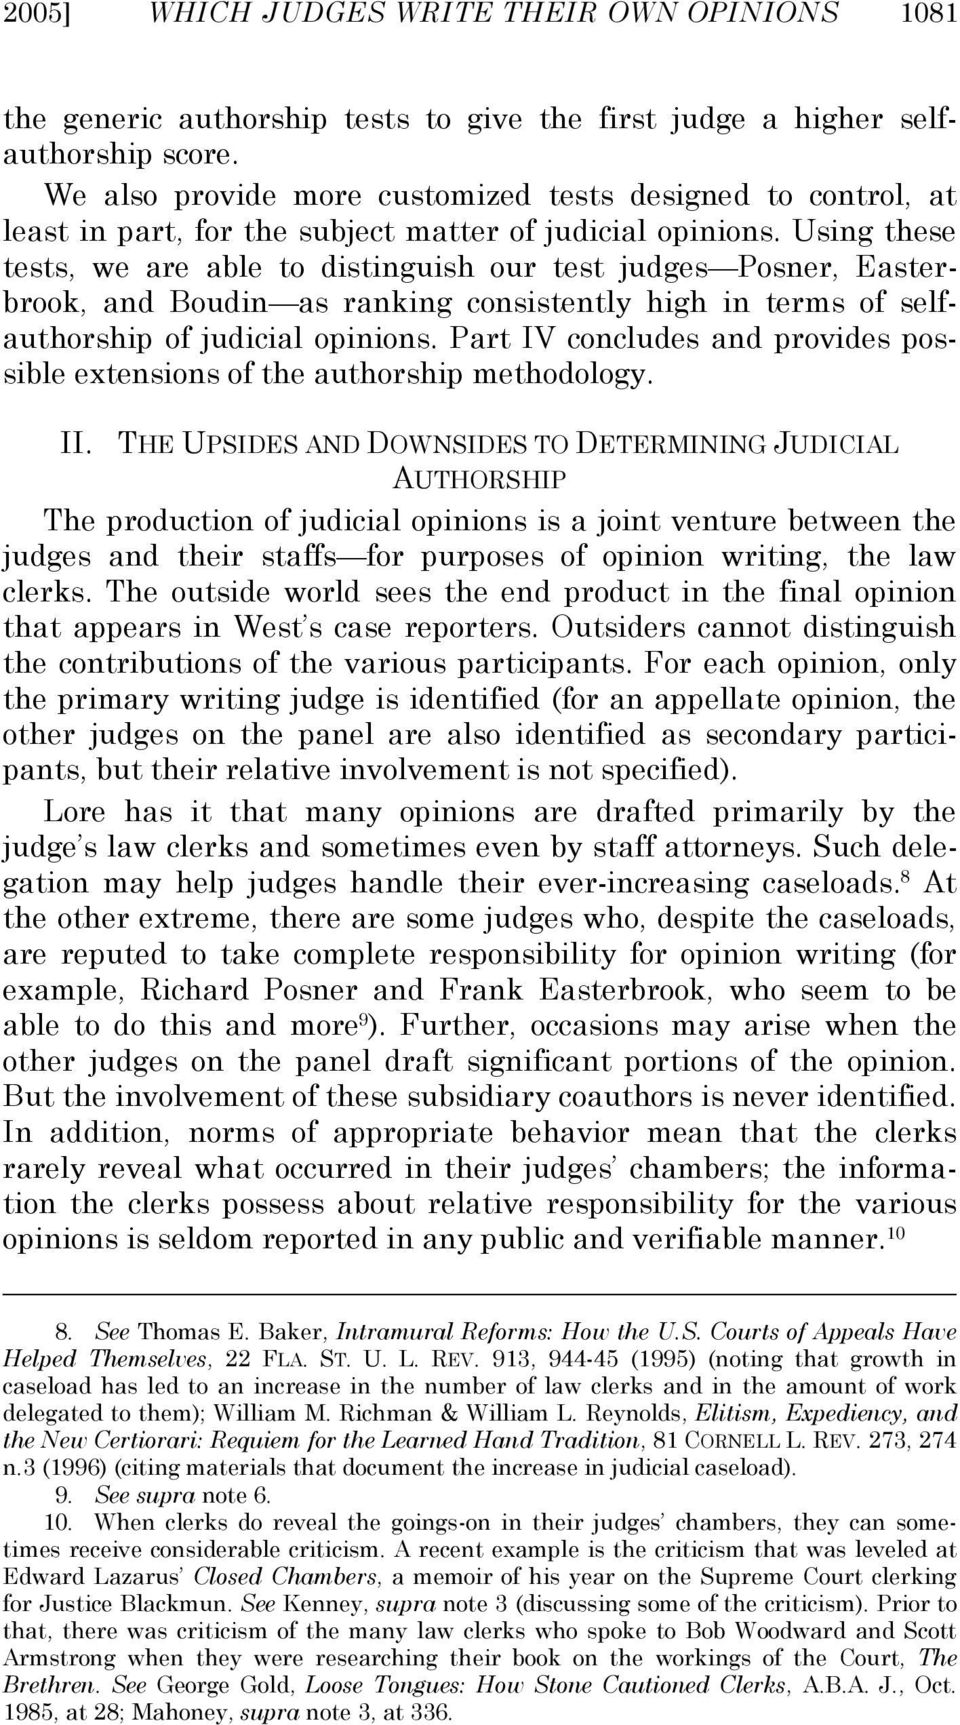 Using these tests, we are able to distinguish our test judges Posner, Easterbrook, and Boudin as ranking consistently high in terms of selfauthorship of judicial opinions.